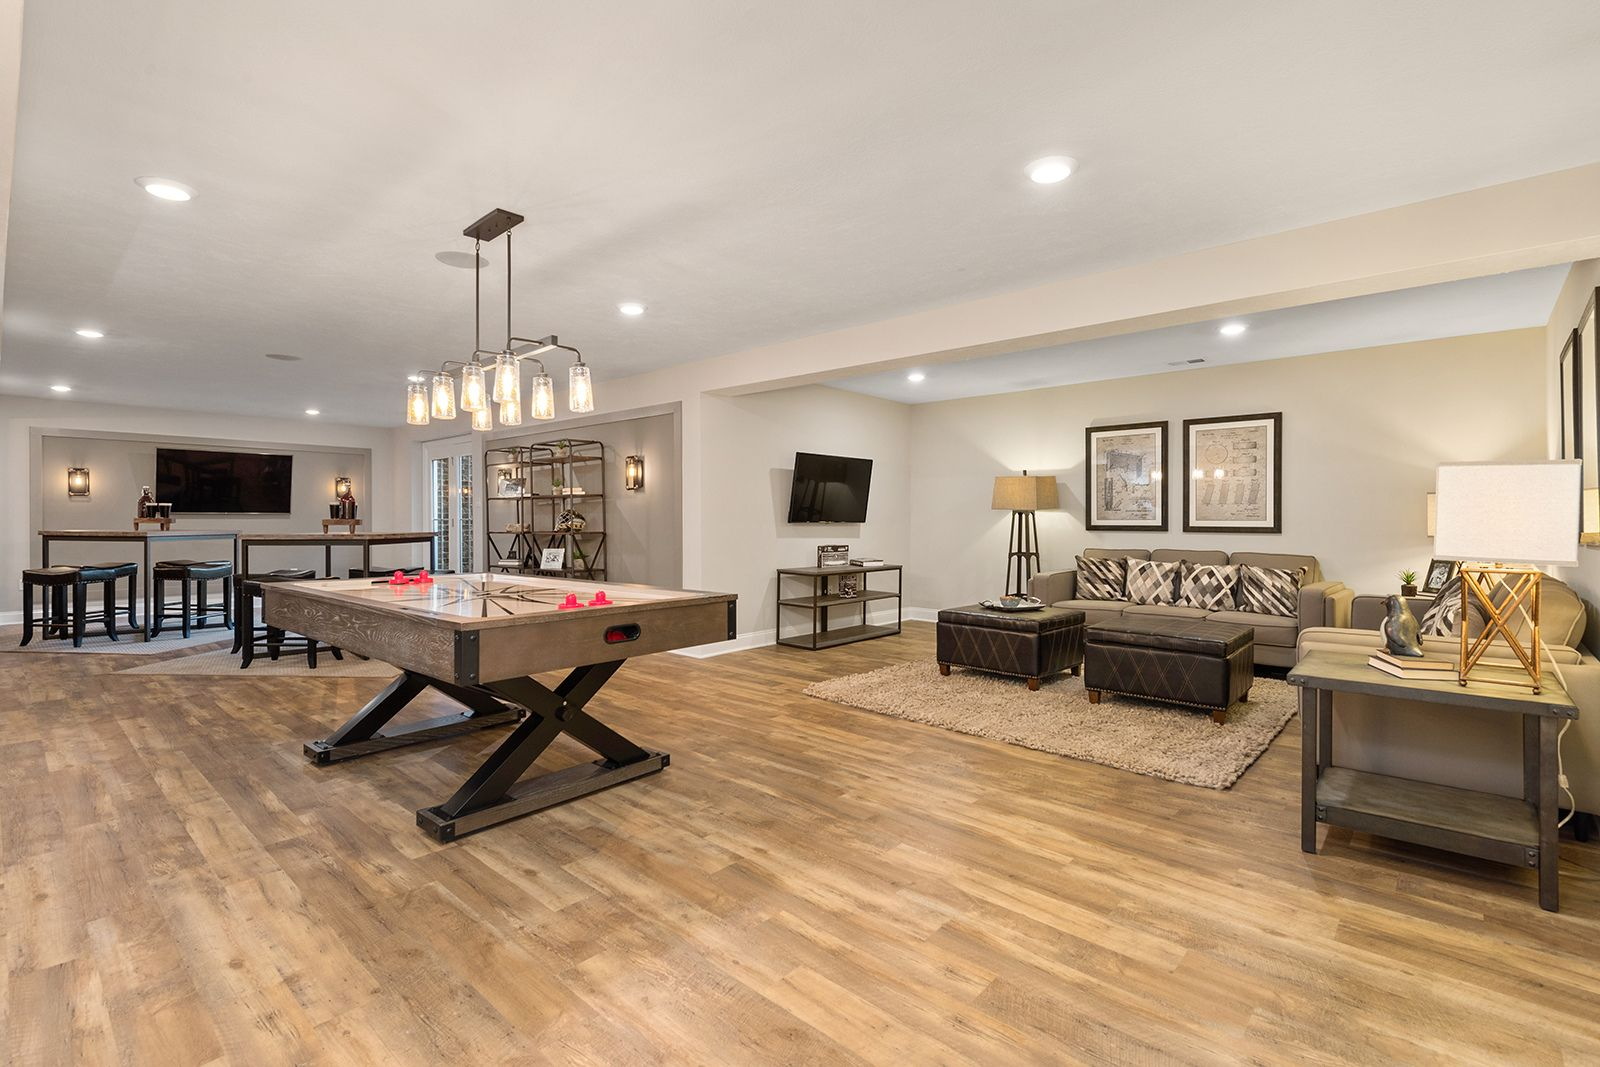 Living Area featured in the Olsen By HeartlandHomes in Morgantown, WV